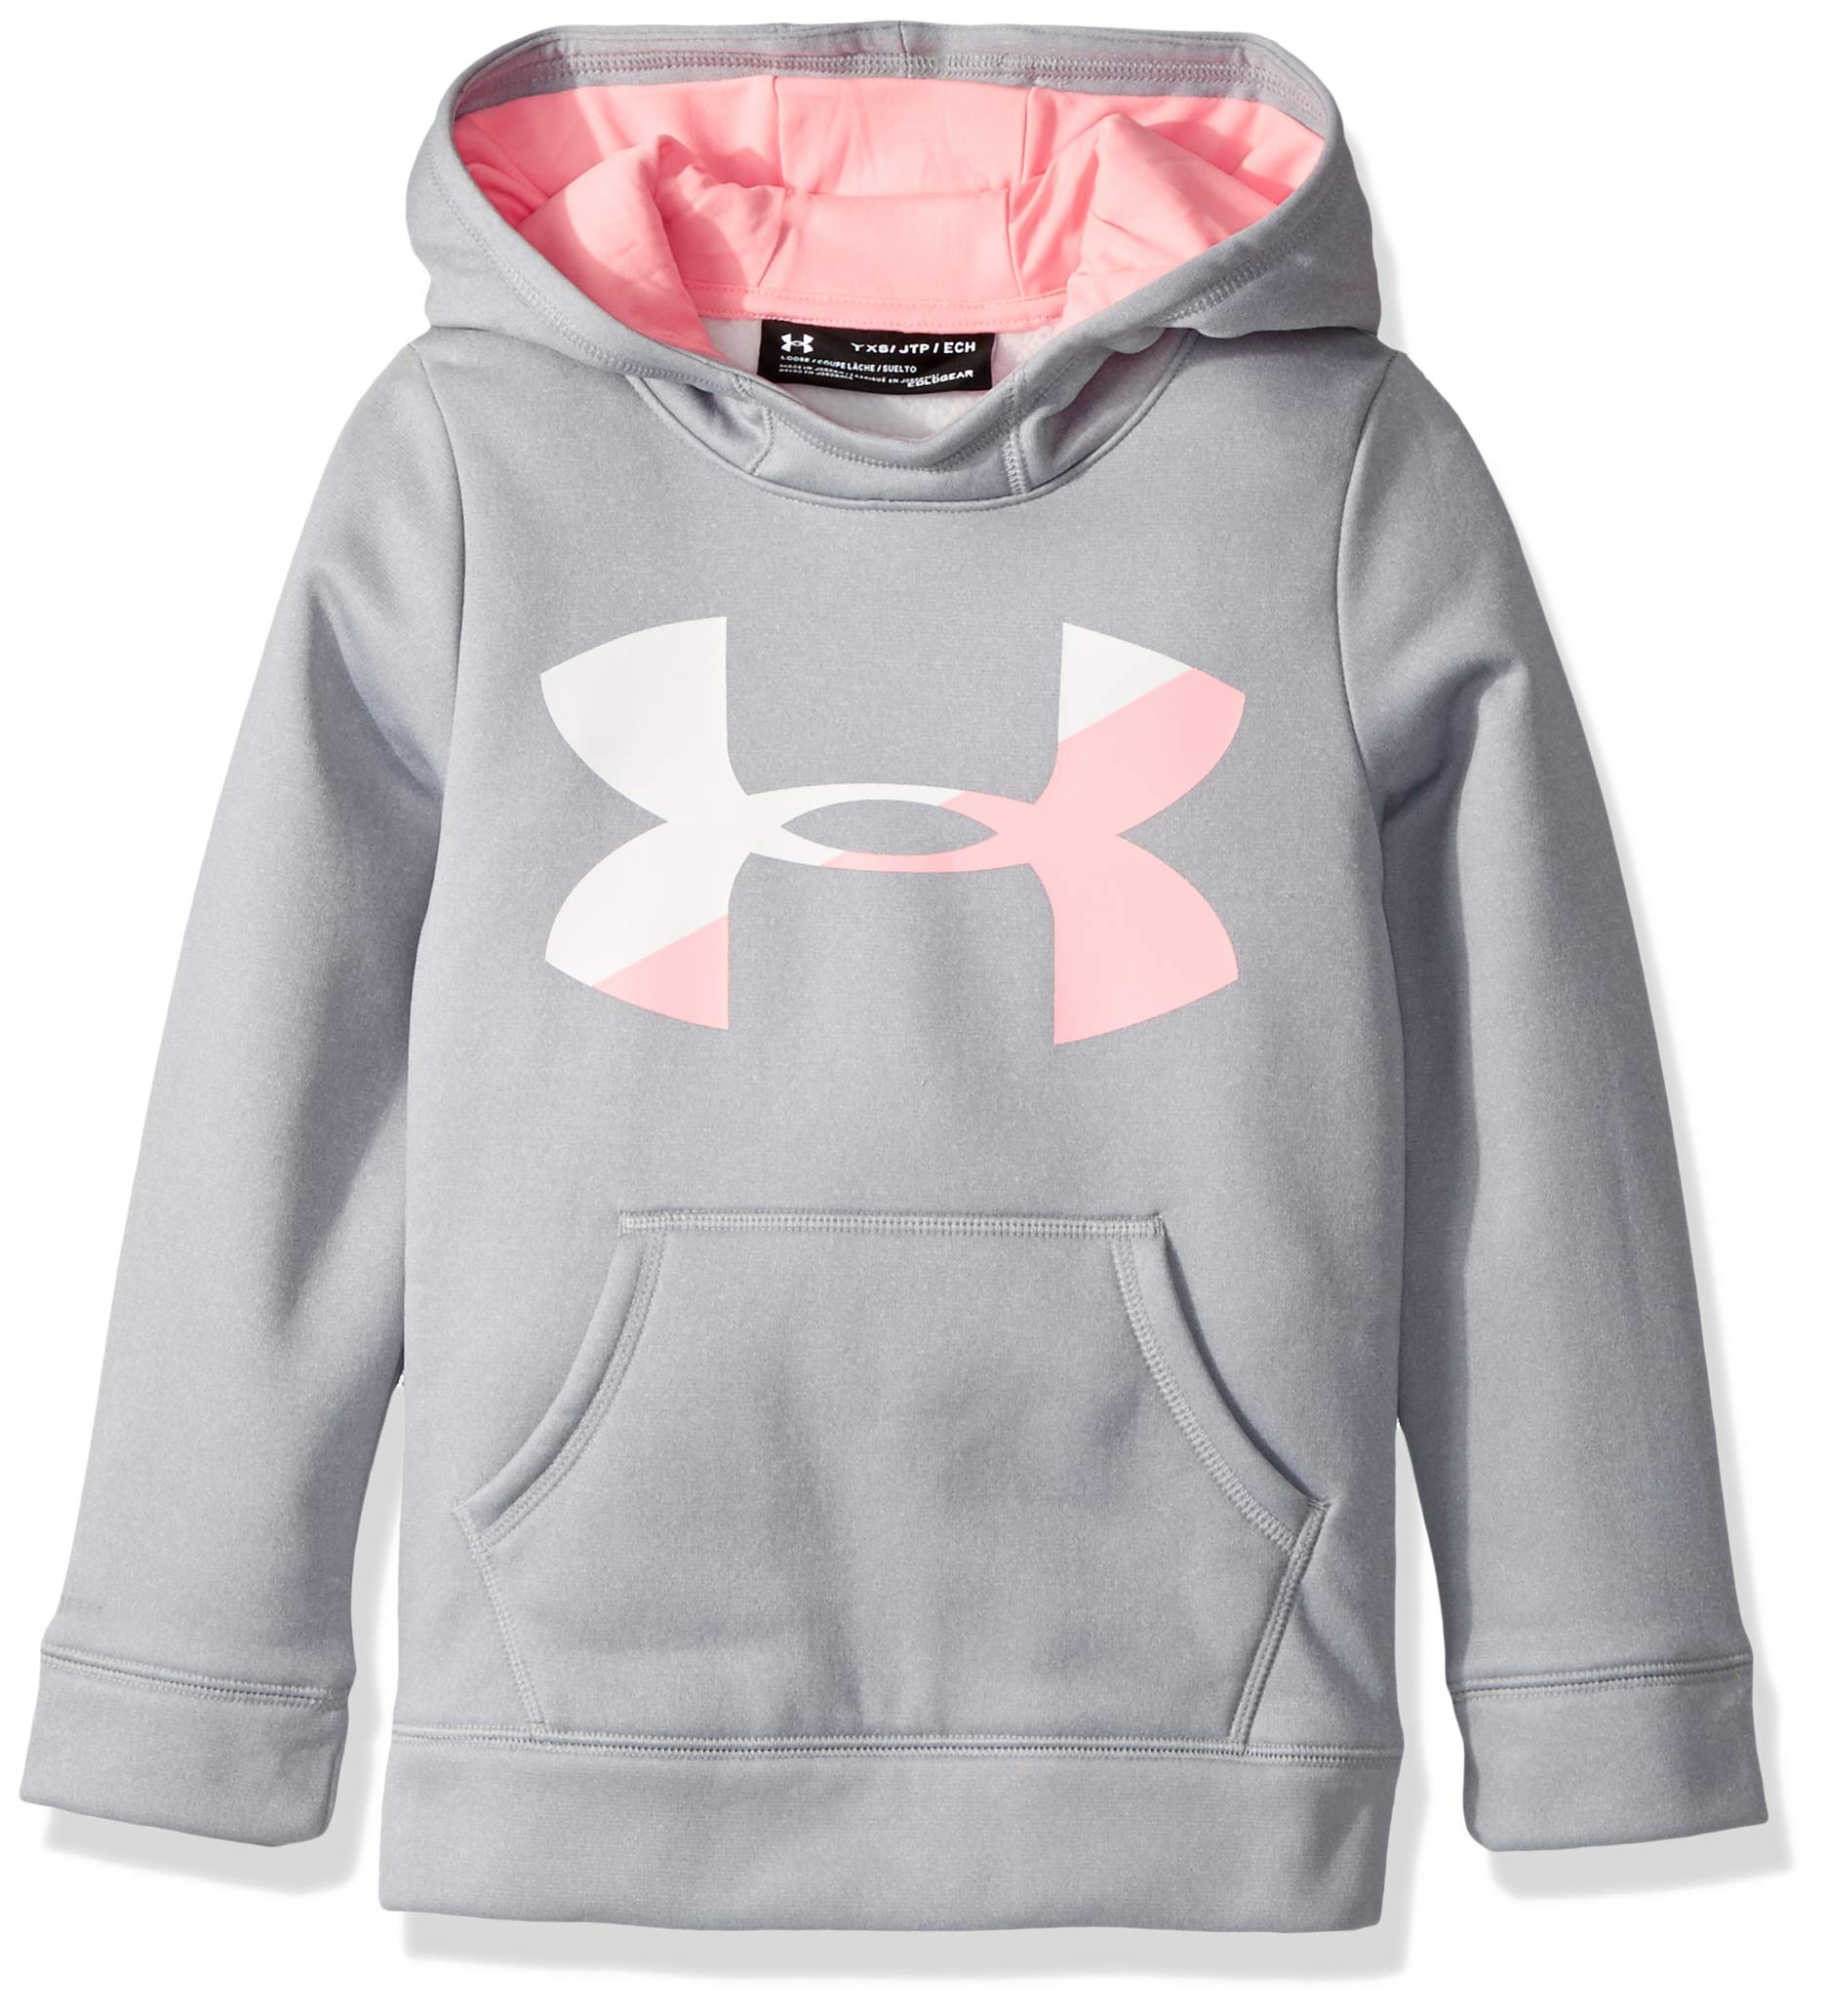 Under Armour Girls' Armour Fleece Big Logo Hoodie,Overcast Gray (941)/Pop Pink, Youth X-Small